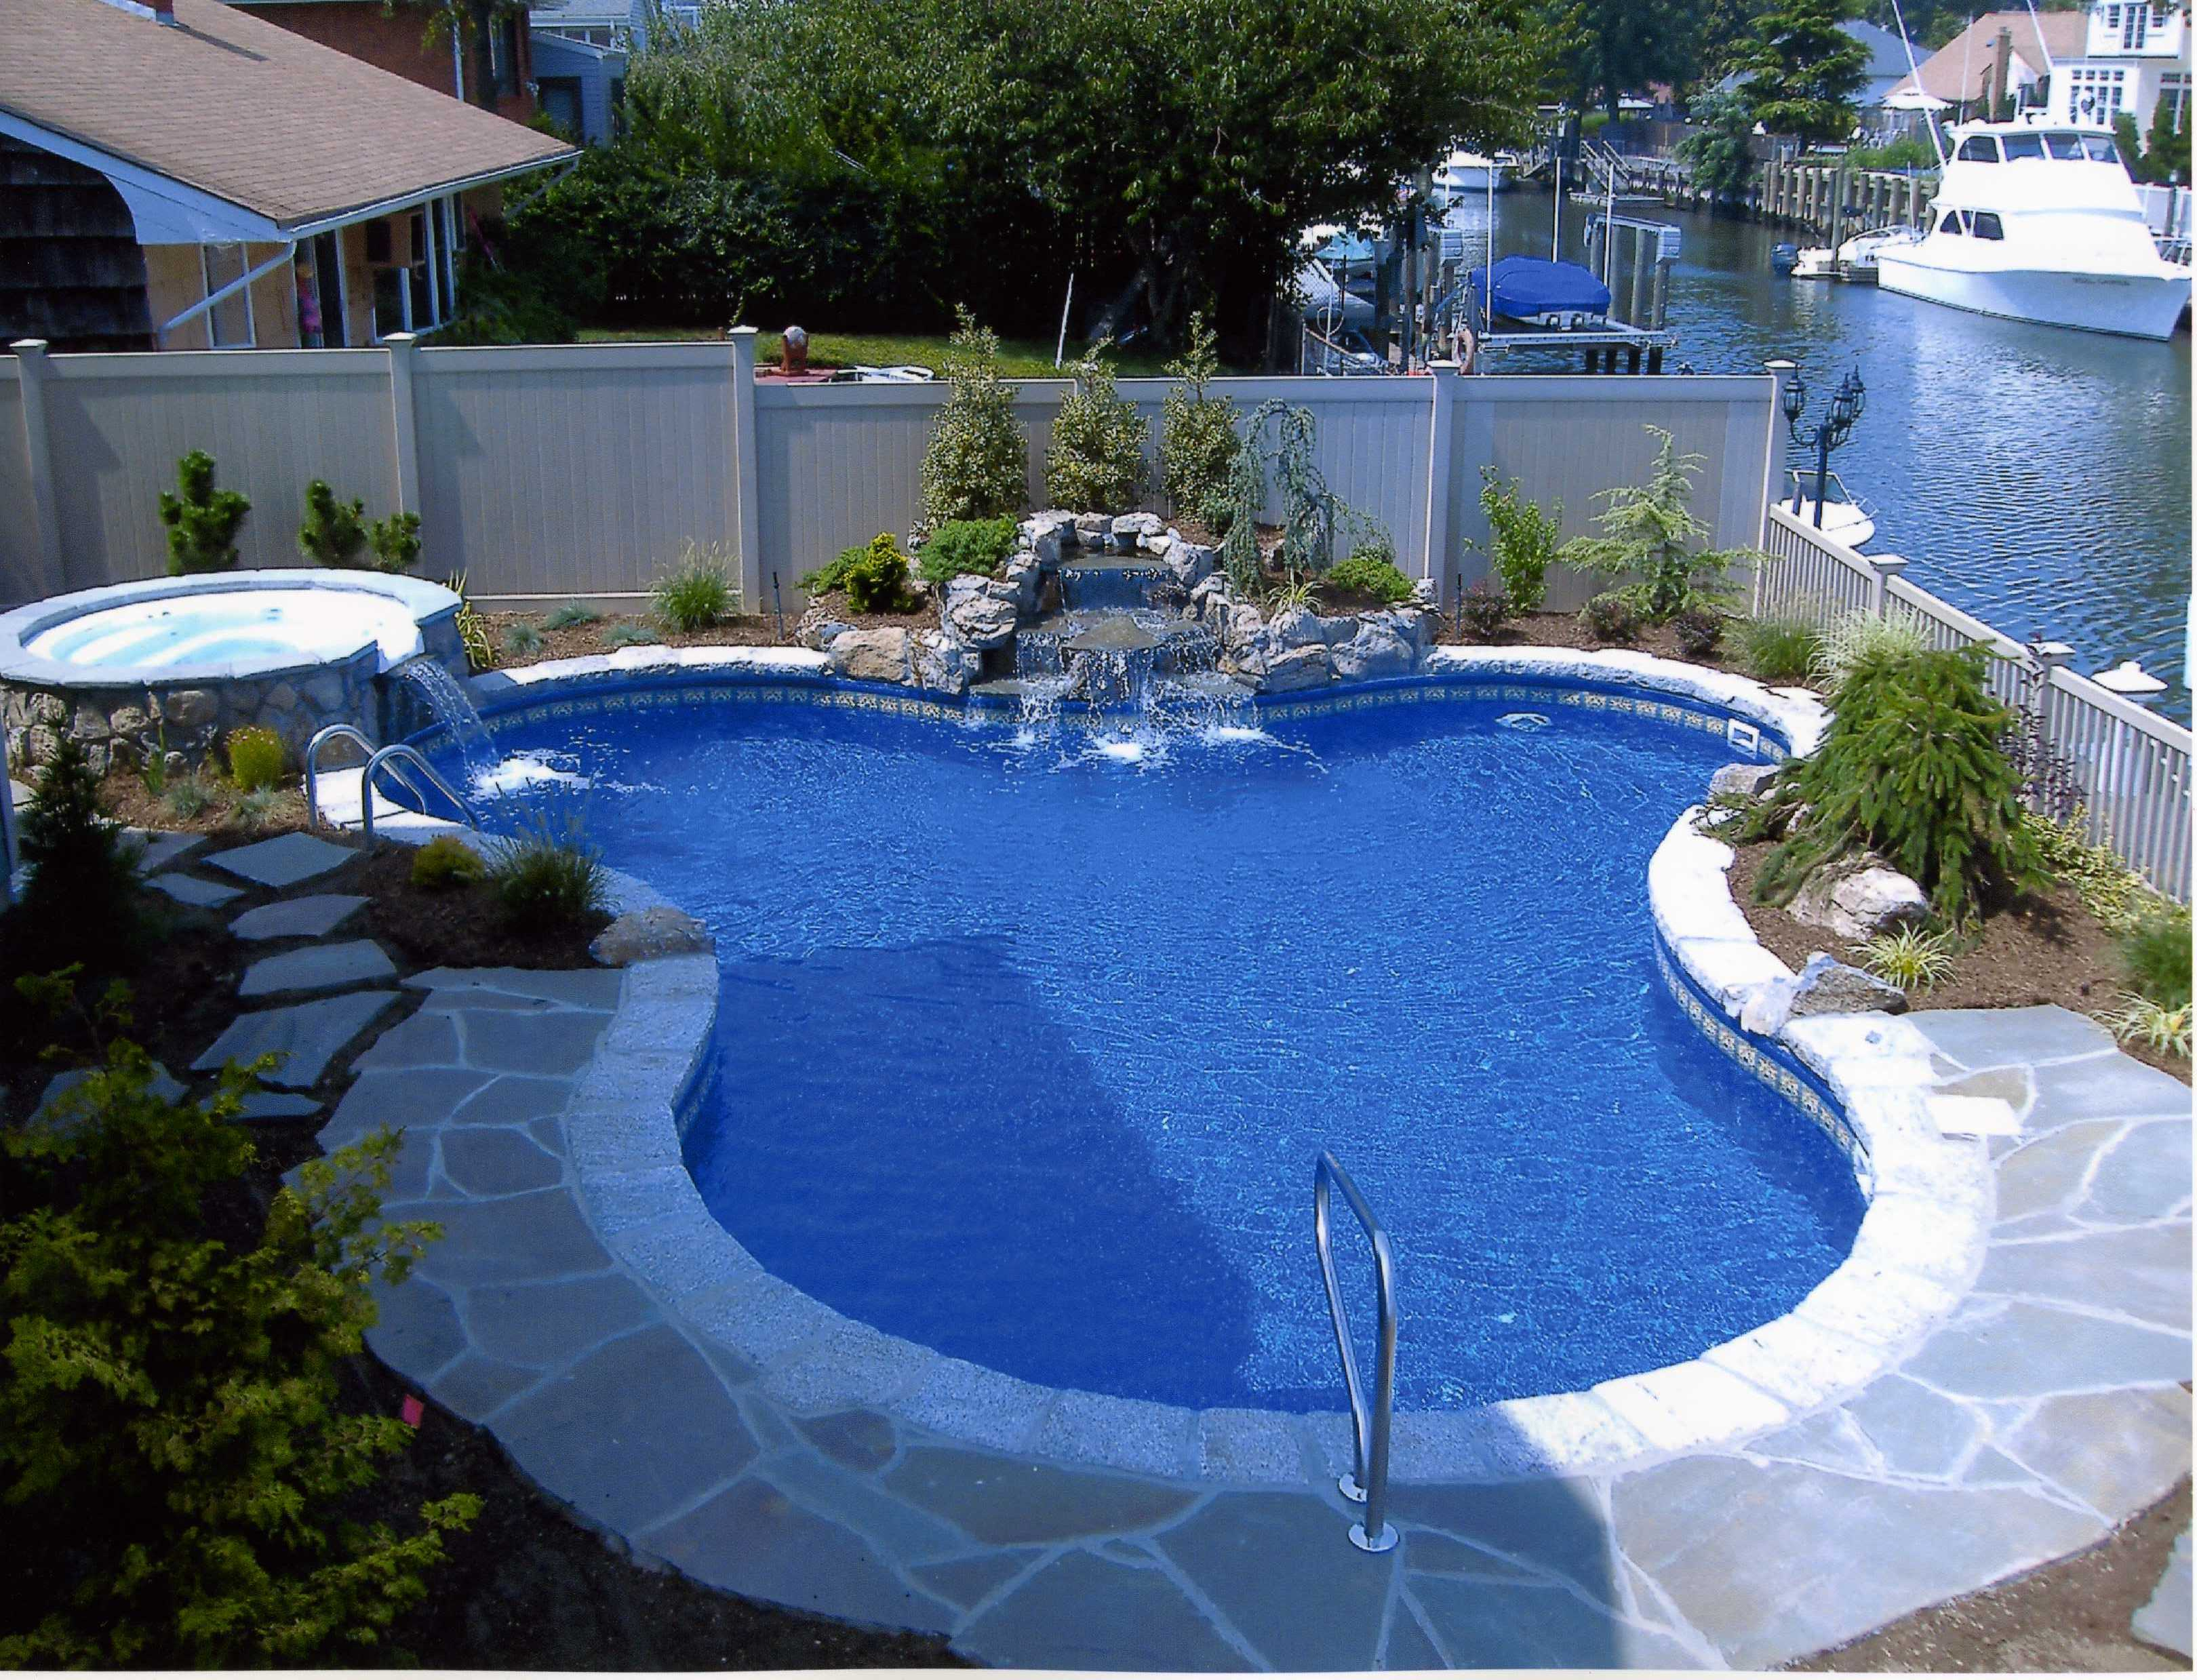 Backyard landscaping ideas swimming pool design for Best small pool designs